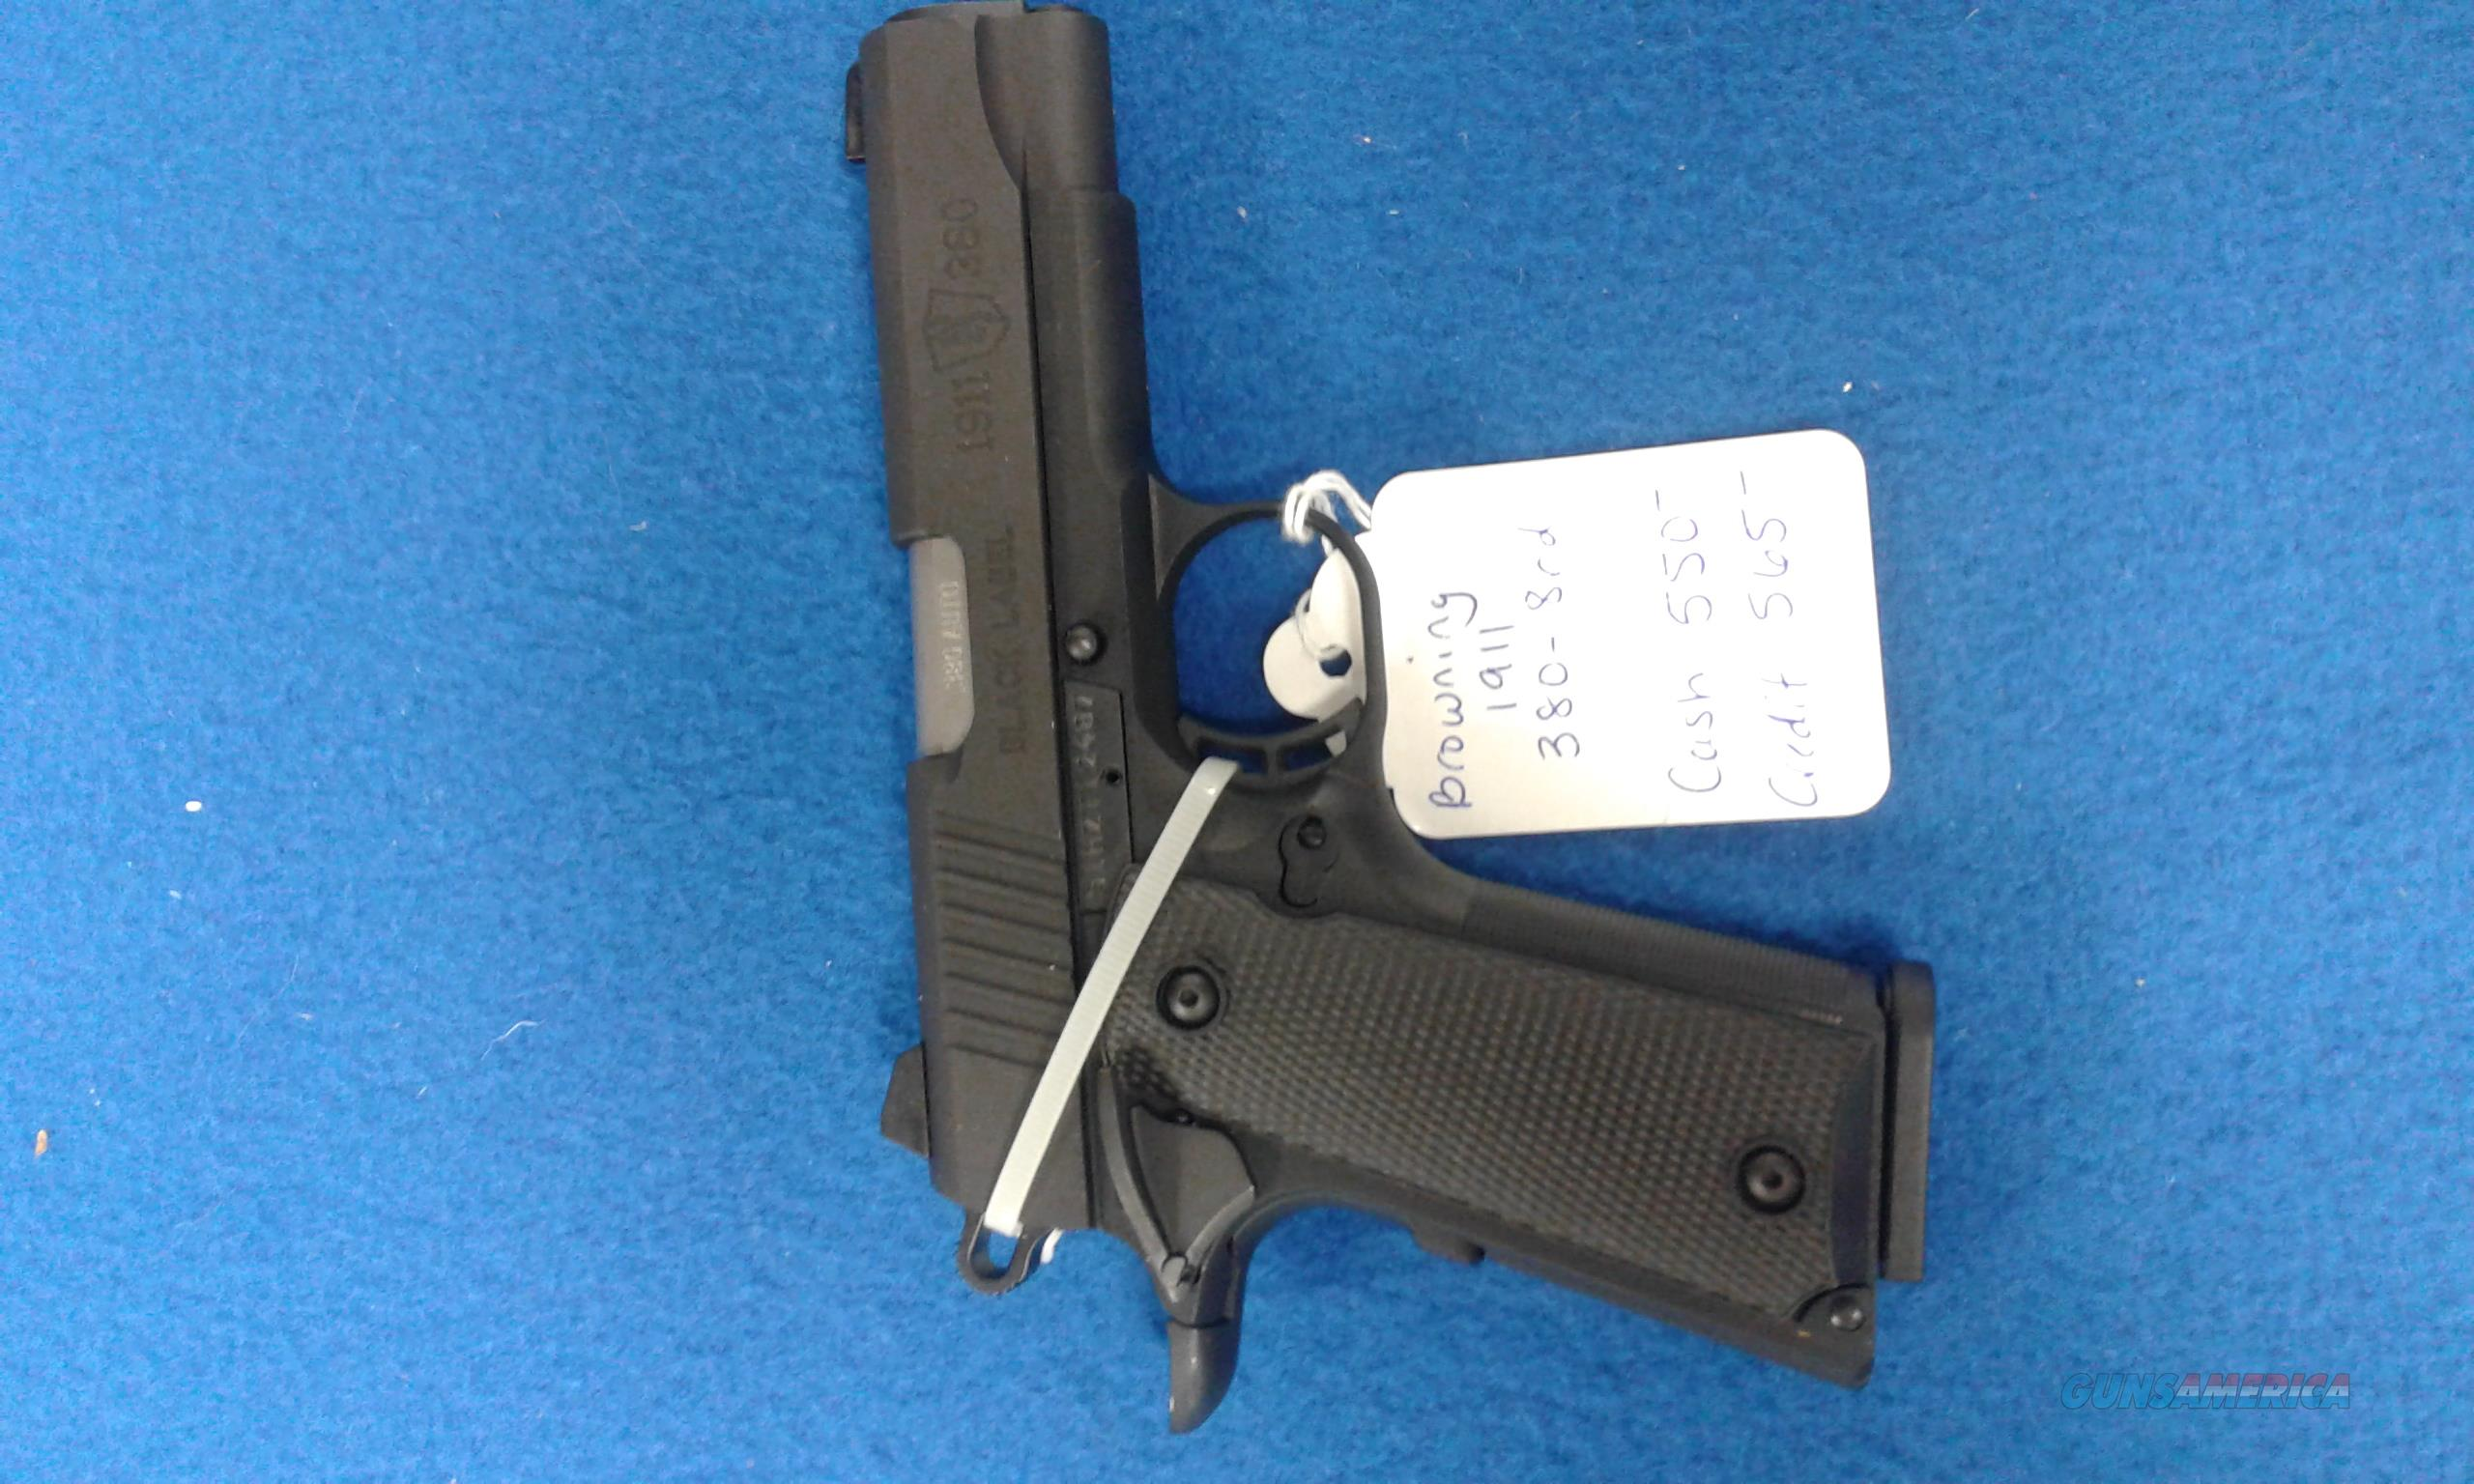 BROWNING 1911 380 CALIBER BLACK LABEL 8RD  Guns > Pistols > Browning Pistols > Baby Browning